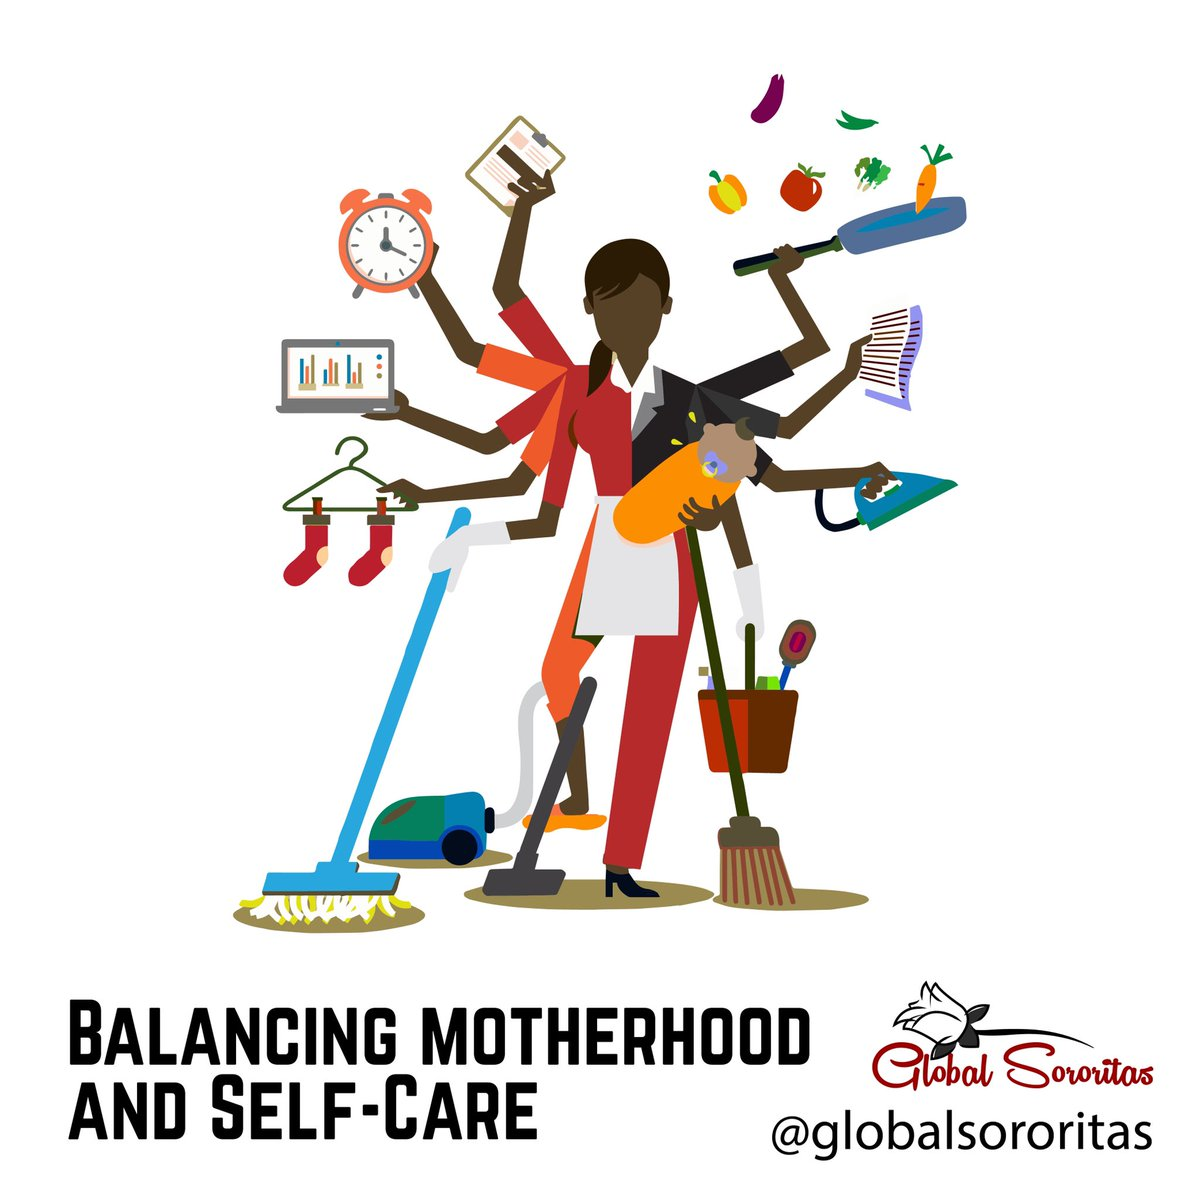 When you are living your life in balance, you are in sync with peace and harmony. #Harmony #peace #balance #joy #selfcare #selflove #motherhood #selfawareness #mothers #parenting #spaday #taketimout #globalsororita https://t.co/ooyxpTOP7O